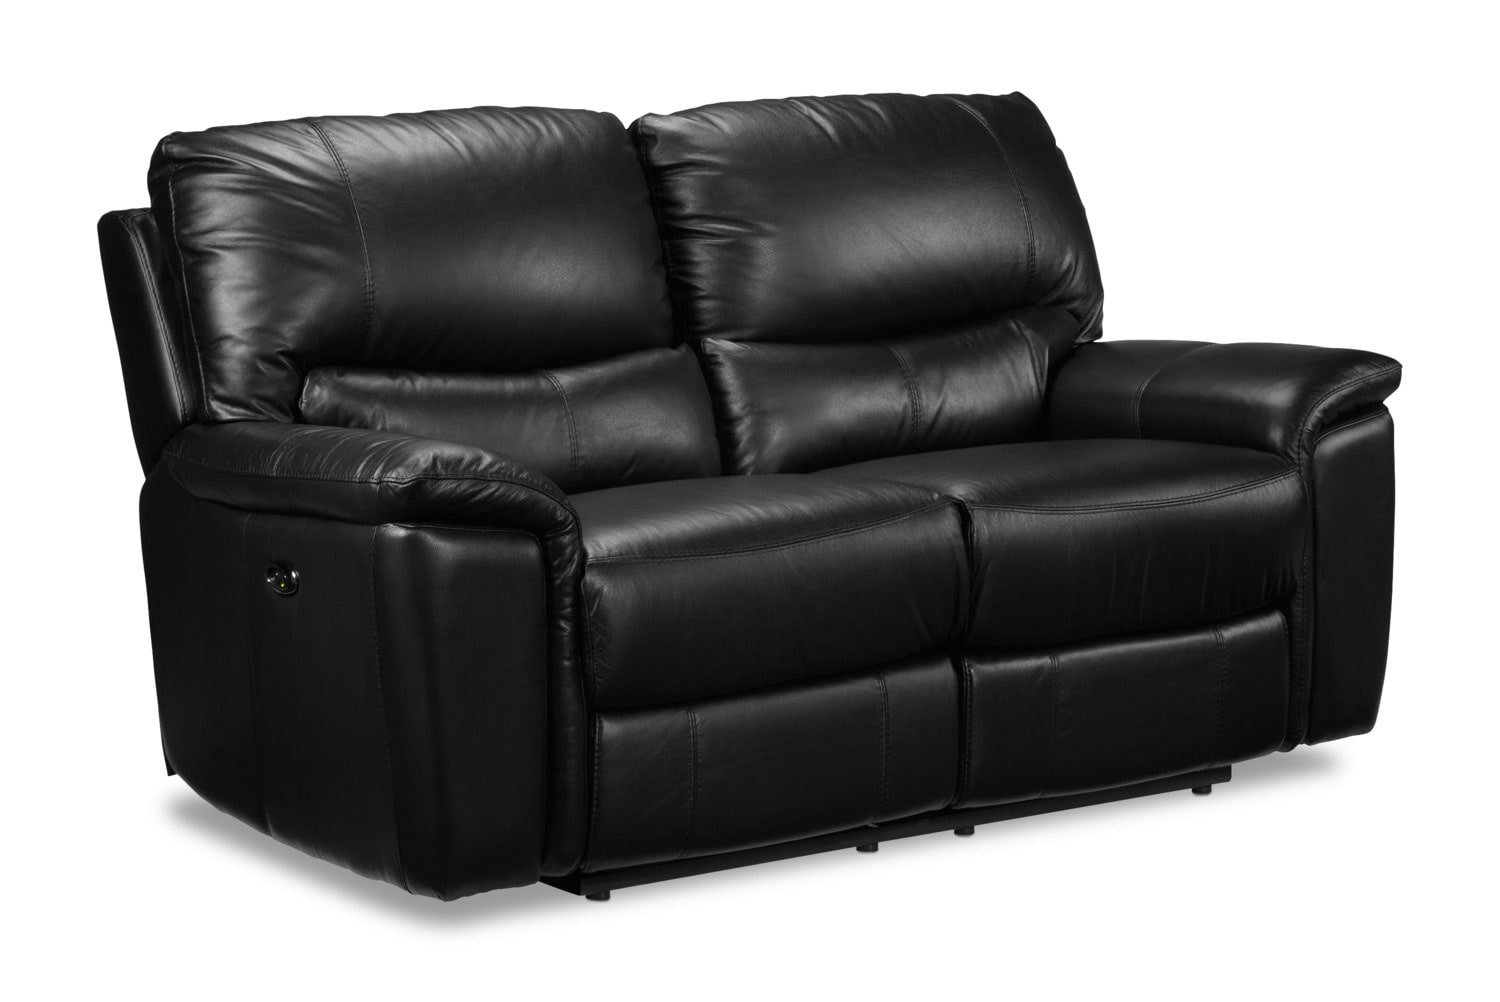 Living Room Furniture - Nolan Power Reclining Loveseat - Black